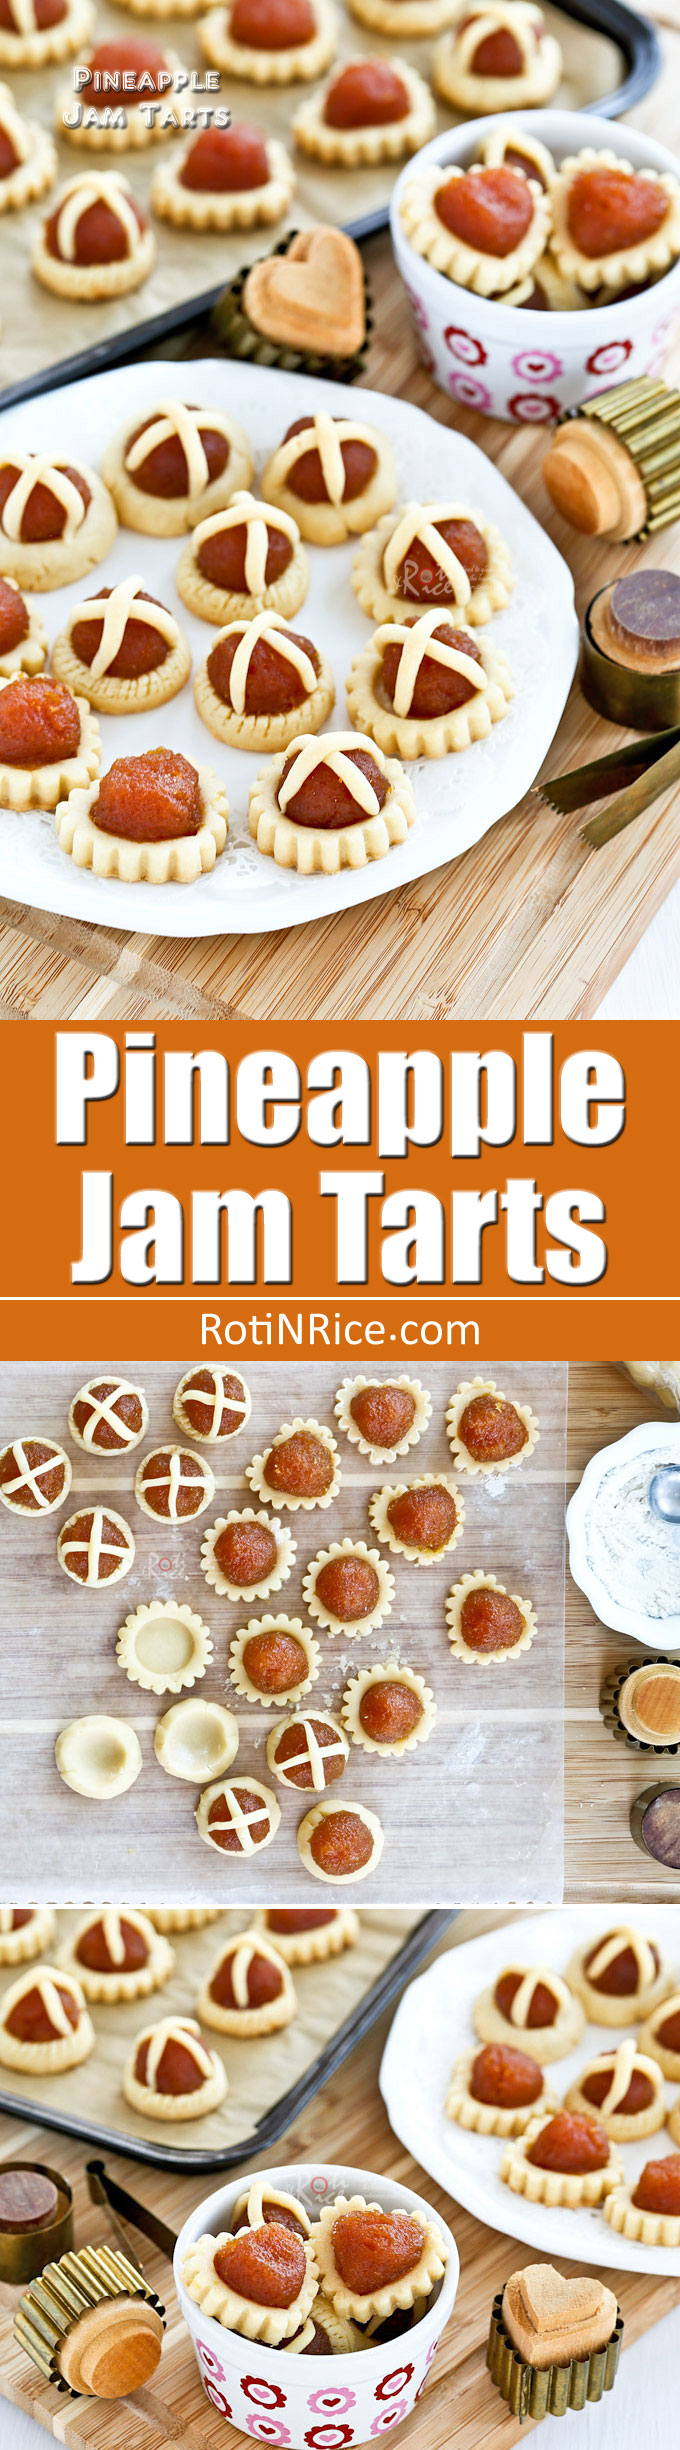 The best ever Pineapple Jam Tarts with a crumbly sandy crust and golden homemade pineapple jam. Totally irresistible and a must-try for special occasions. | RotiNRice.com